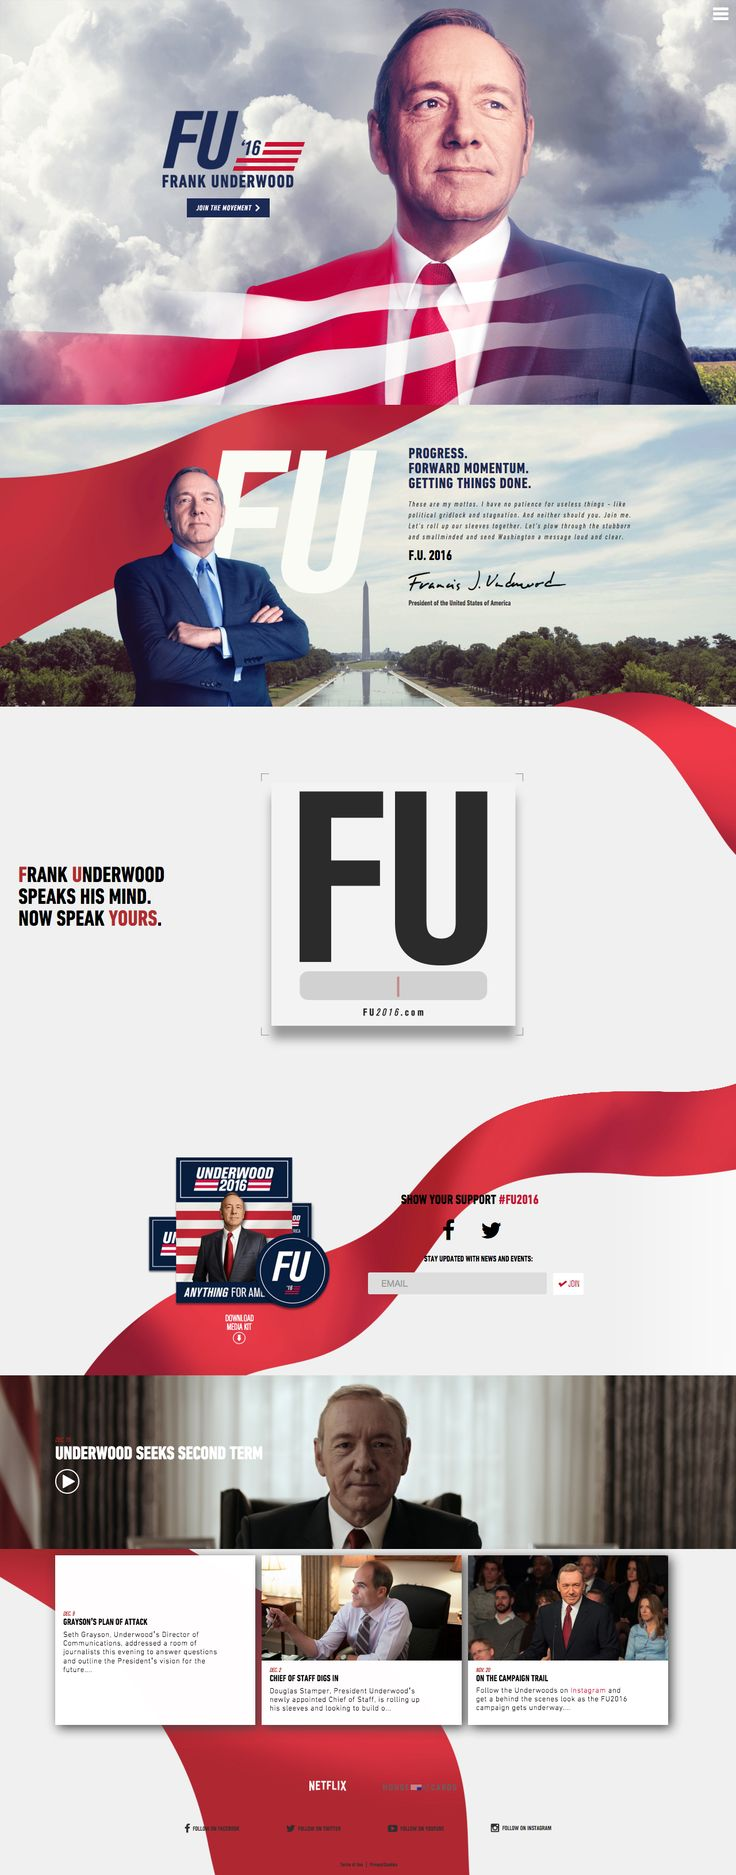 Excellent One Pager promoting Frank Underwood's 2016 campaign aka Season 4 of House of Cards. The Single Page website features a gorgeous design, as good as anything you've seen in the political sector. Lovely touch with the animated signature when you scroll to the second section. And anyone who knows the show will love that cheeky eye movement when hovering near his head.